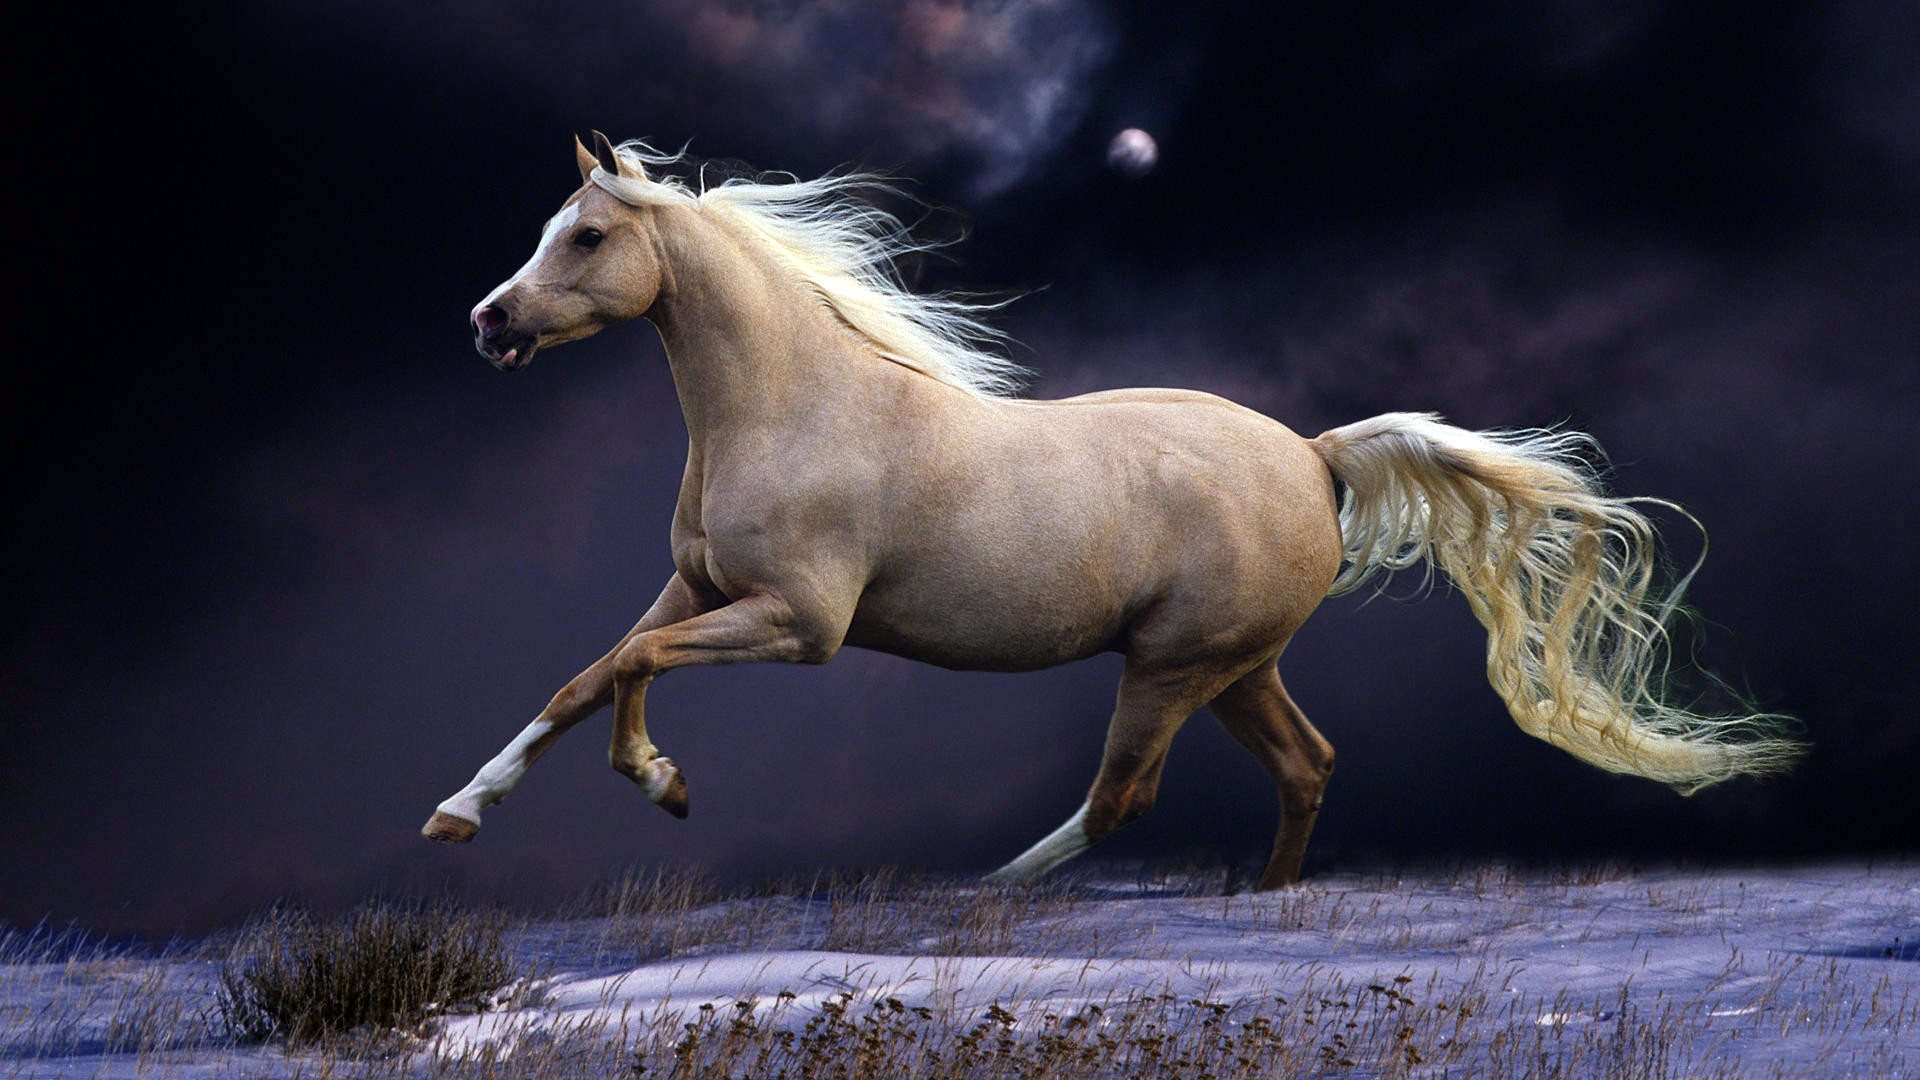 Horse Desktop Backgrounds Wallpapertag